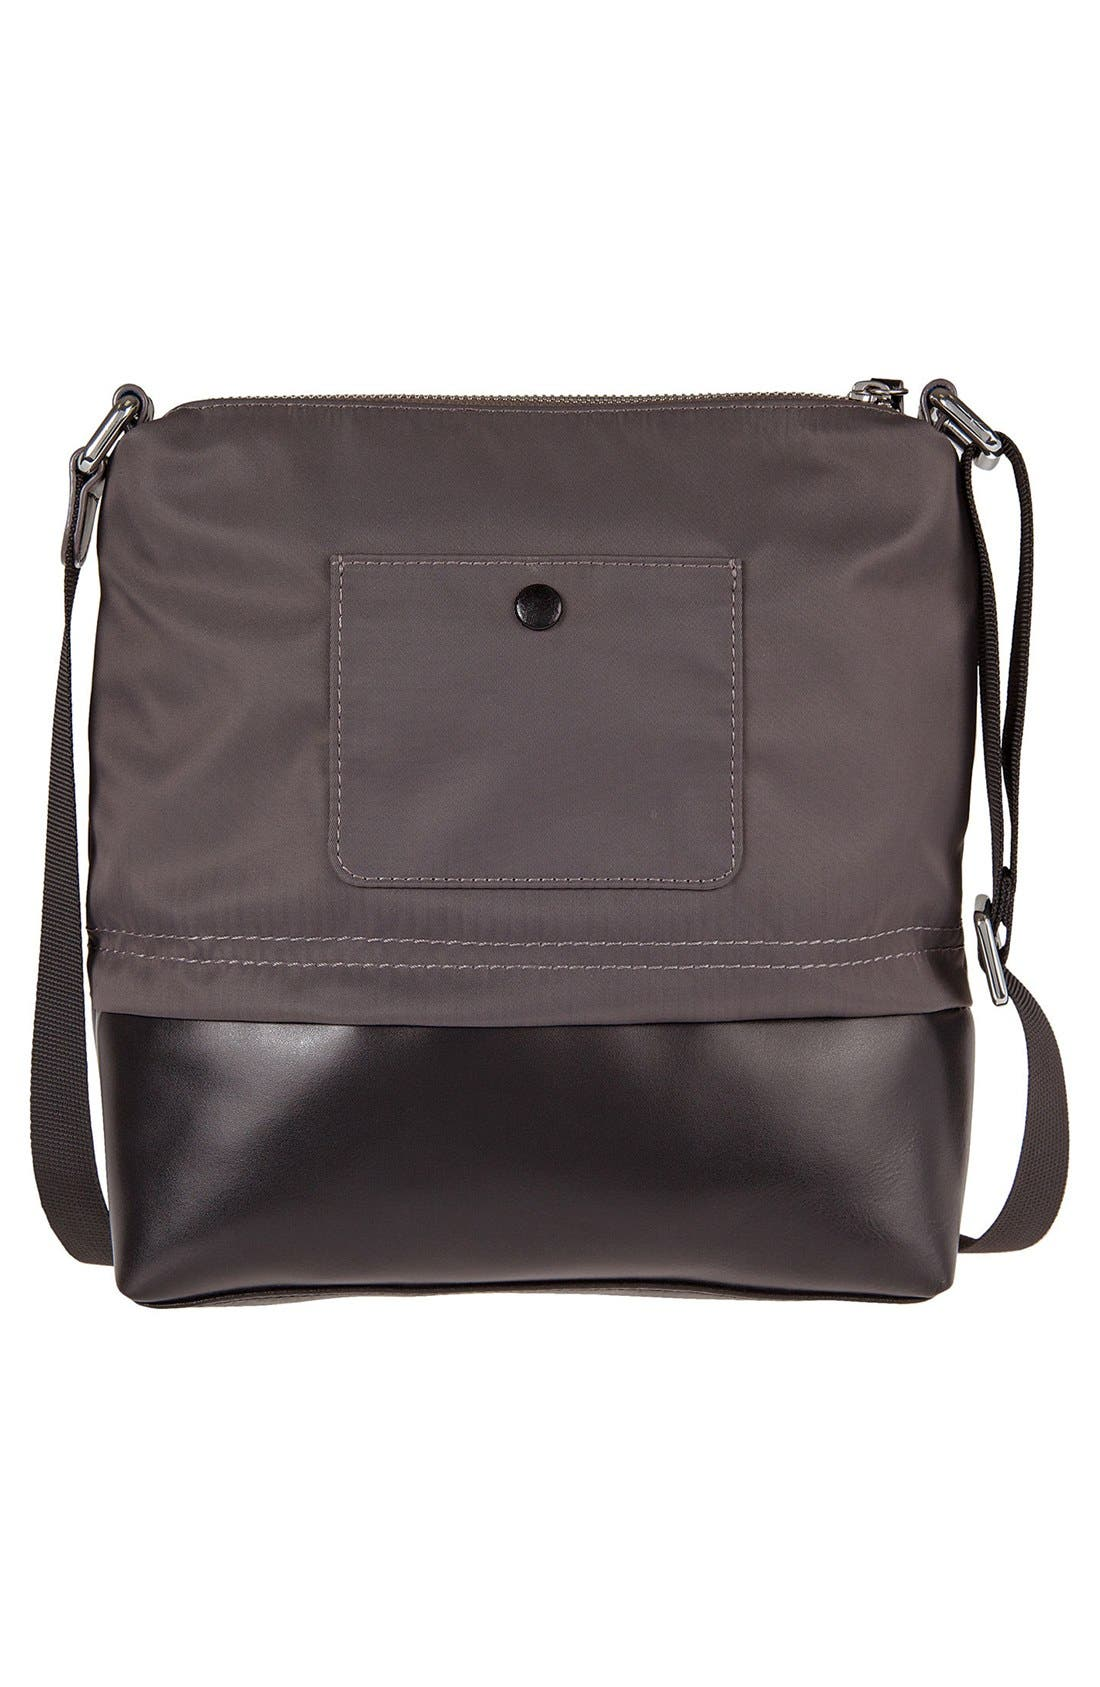 Alternate Image 2  - LODIS Wanda RFID Nylon & Leather Crossbody Bag